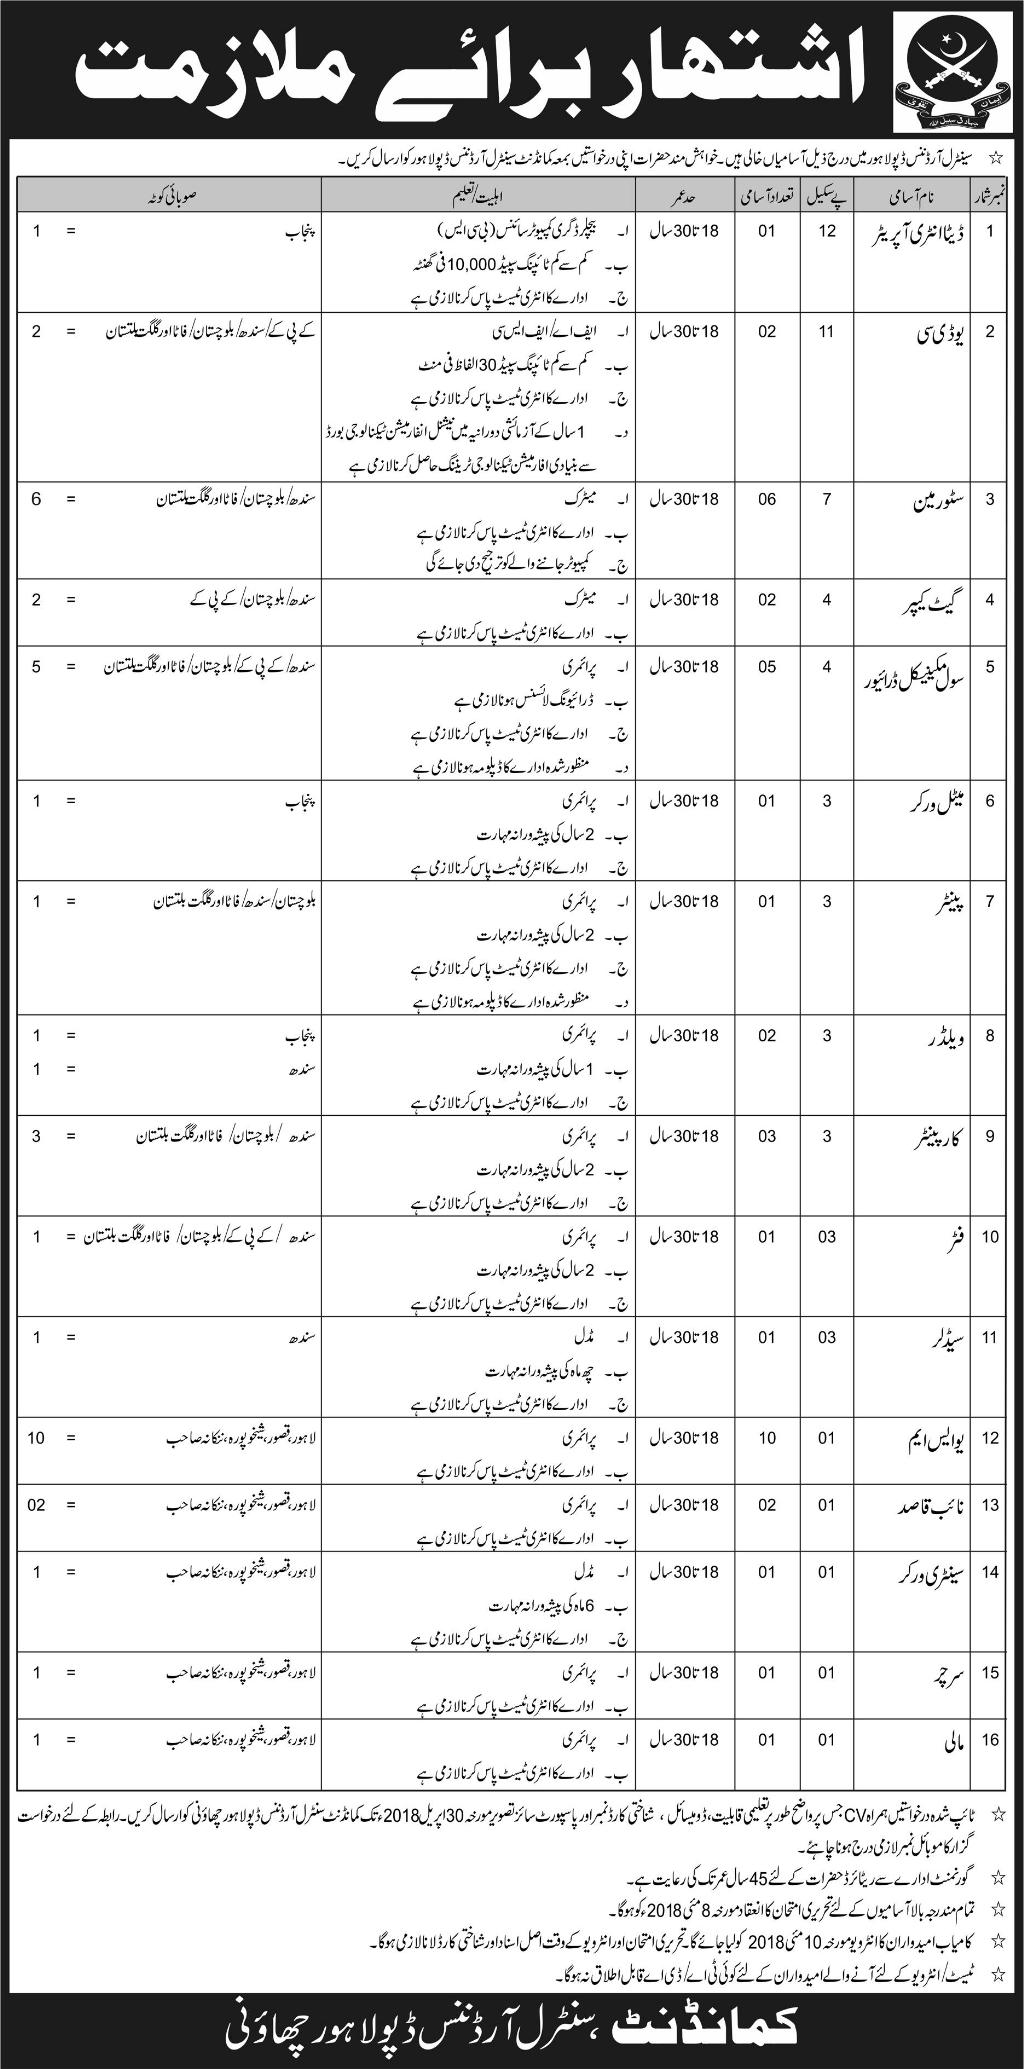 Central Ordinance Depot Lahore 40 Jobs 15 April 2018 Daily Express Newspaper